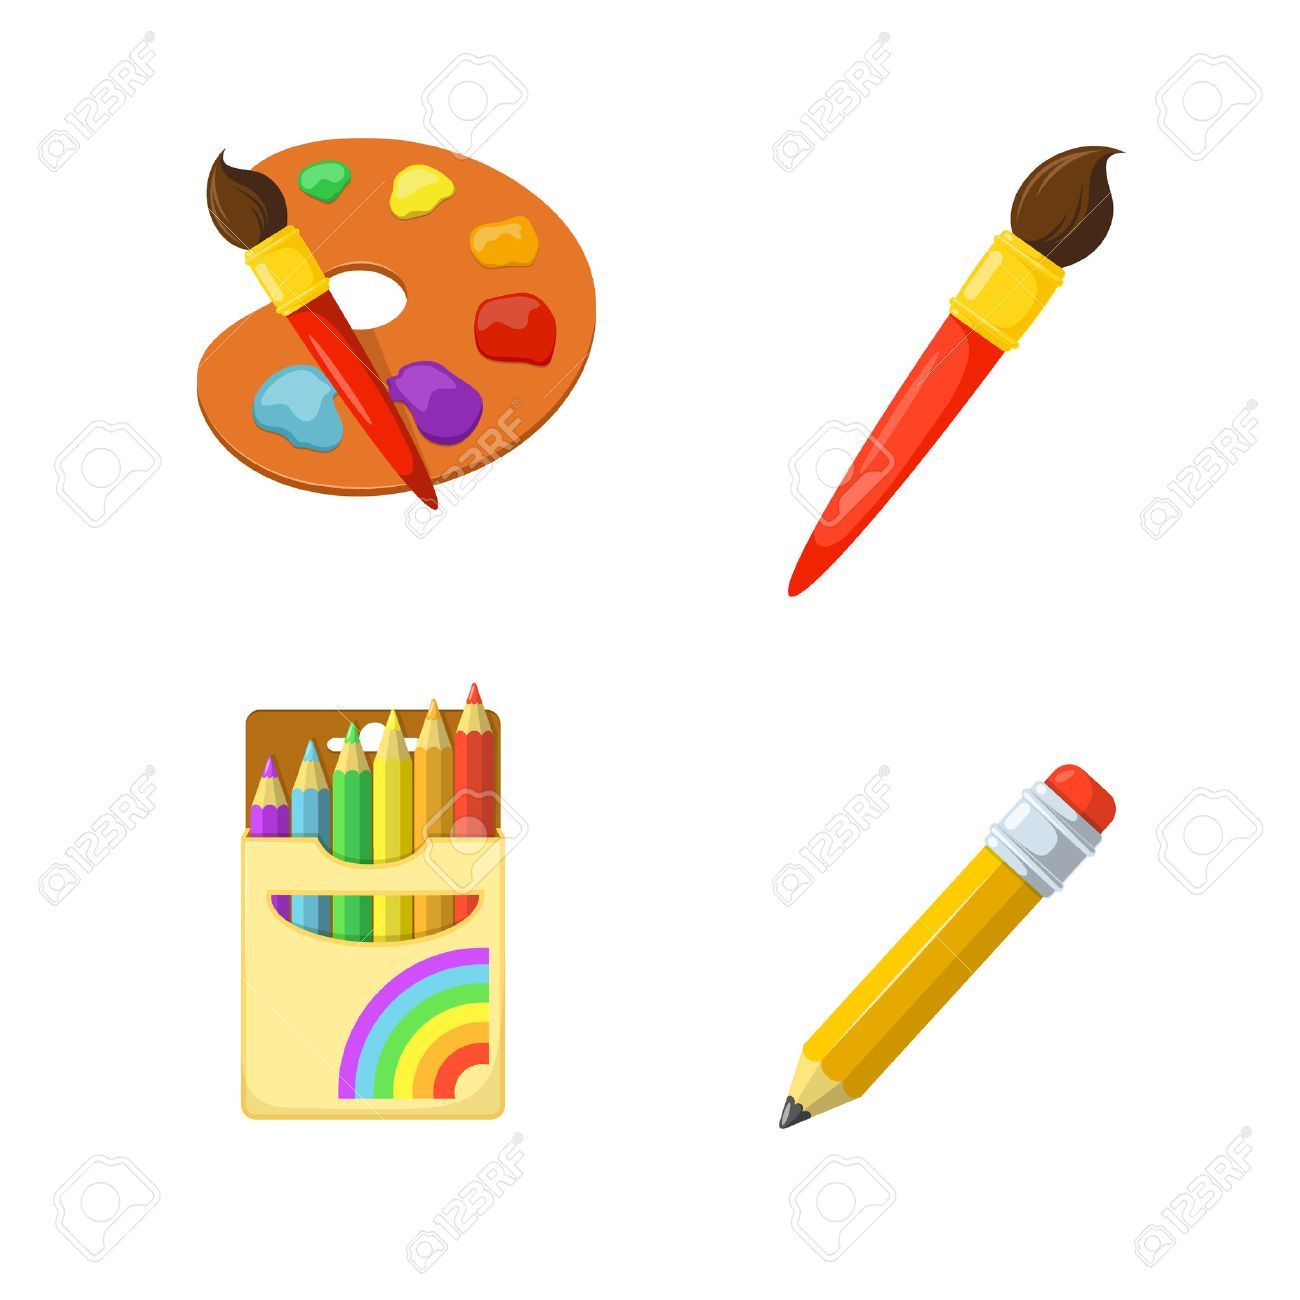 Children creativity. Painting drawing and coloring. Education design elements. Stock Vector - 44029233